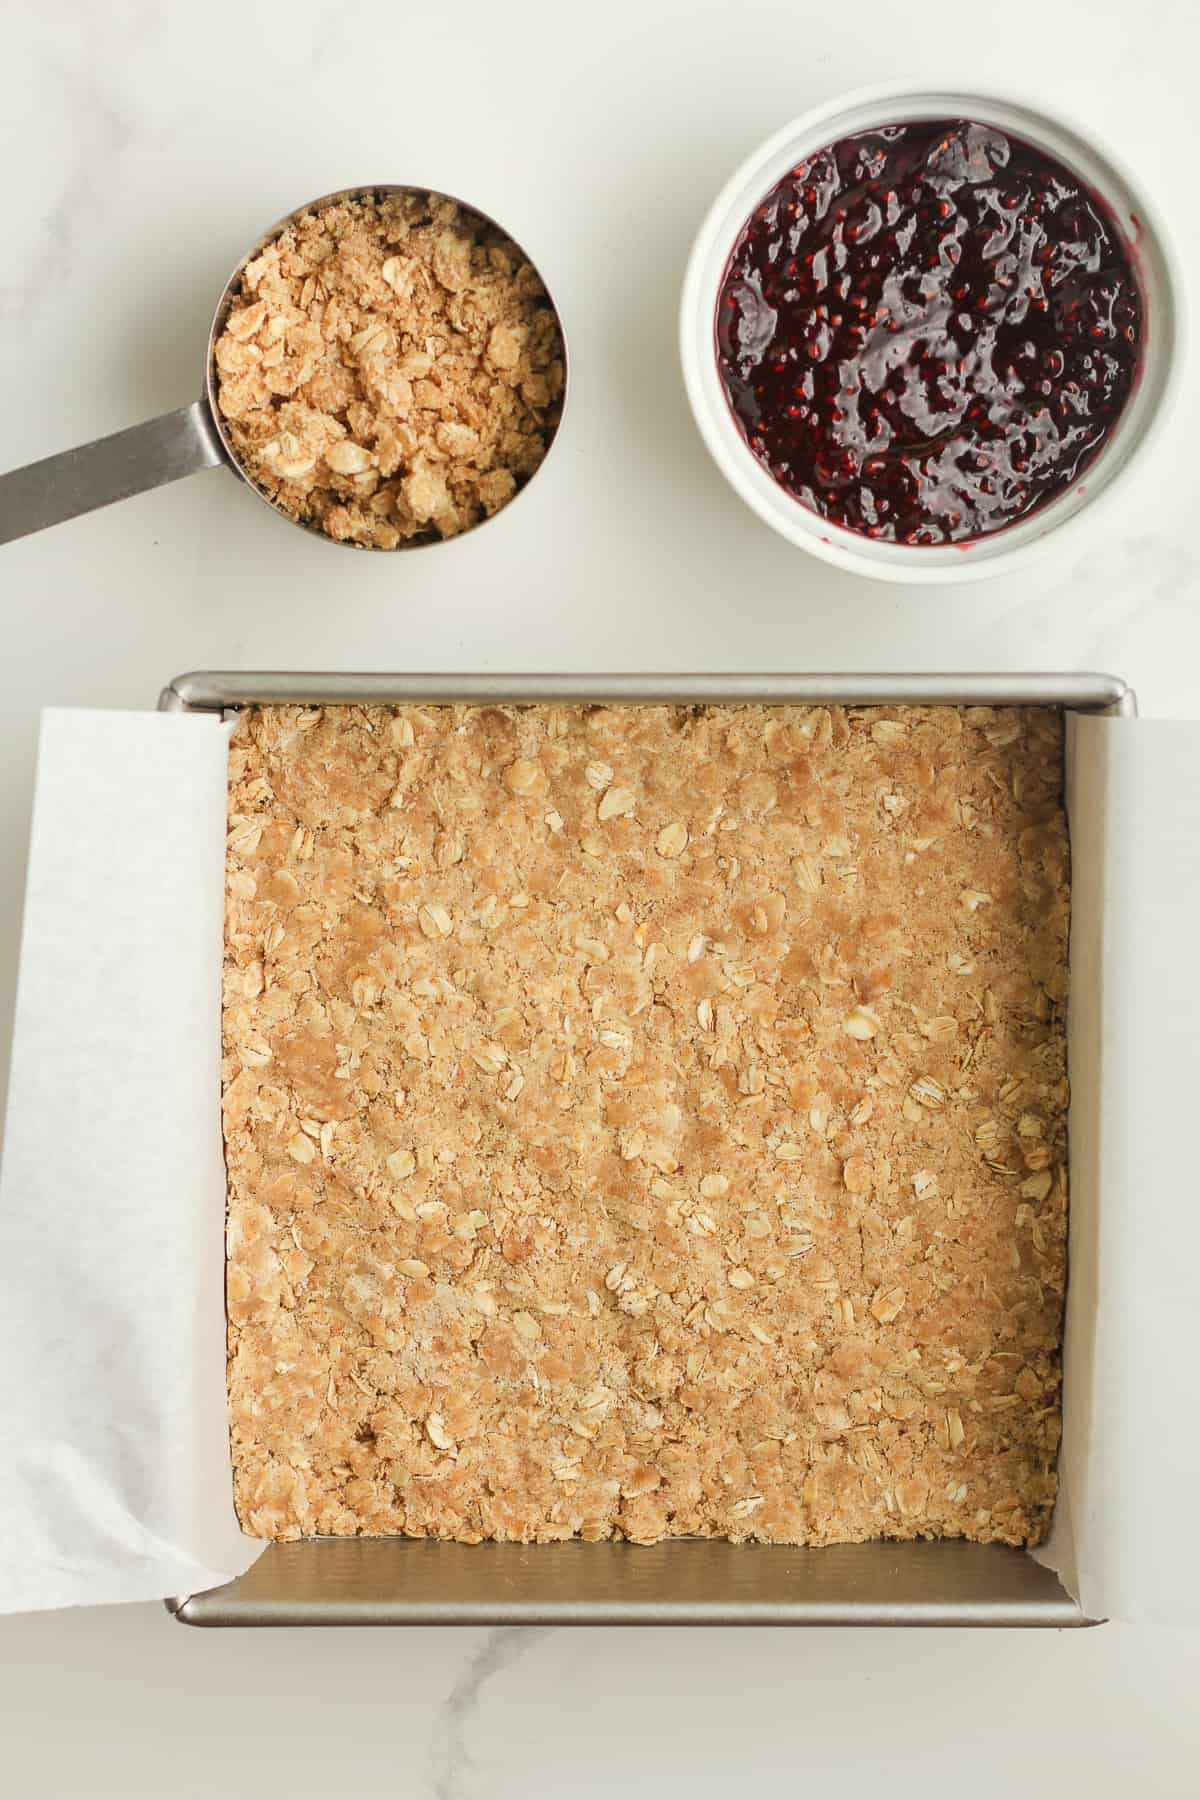 The crumble layer to the bars, with bowls of jam and the reserved crumble.